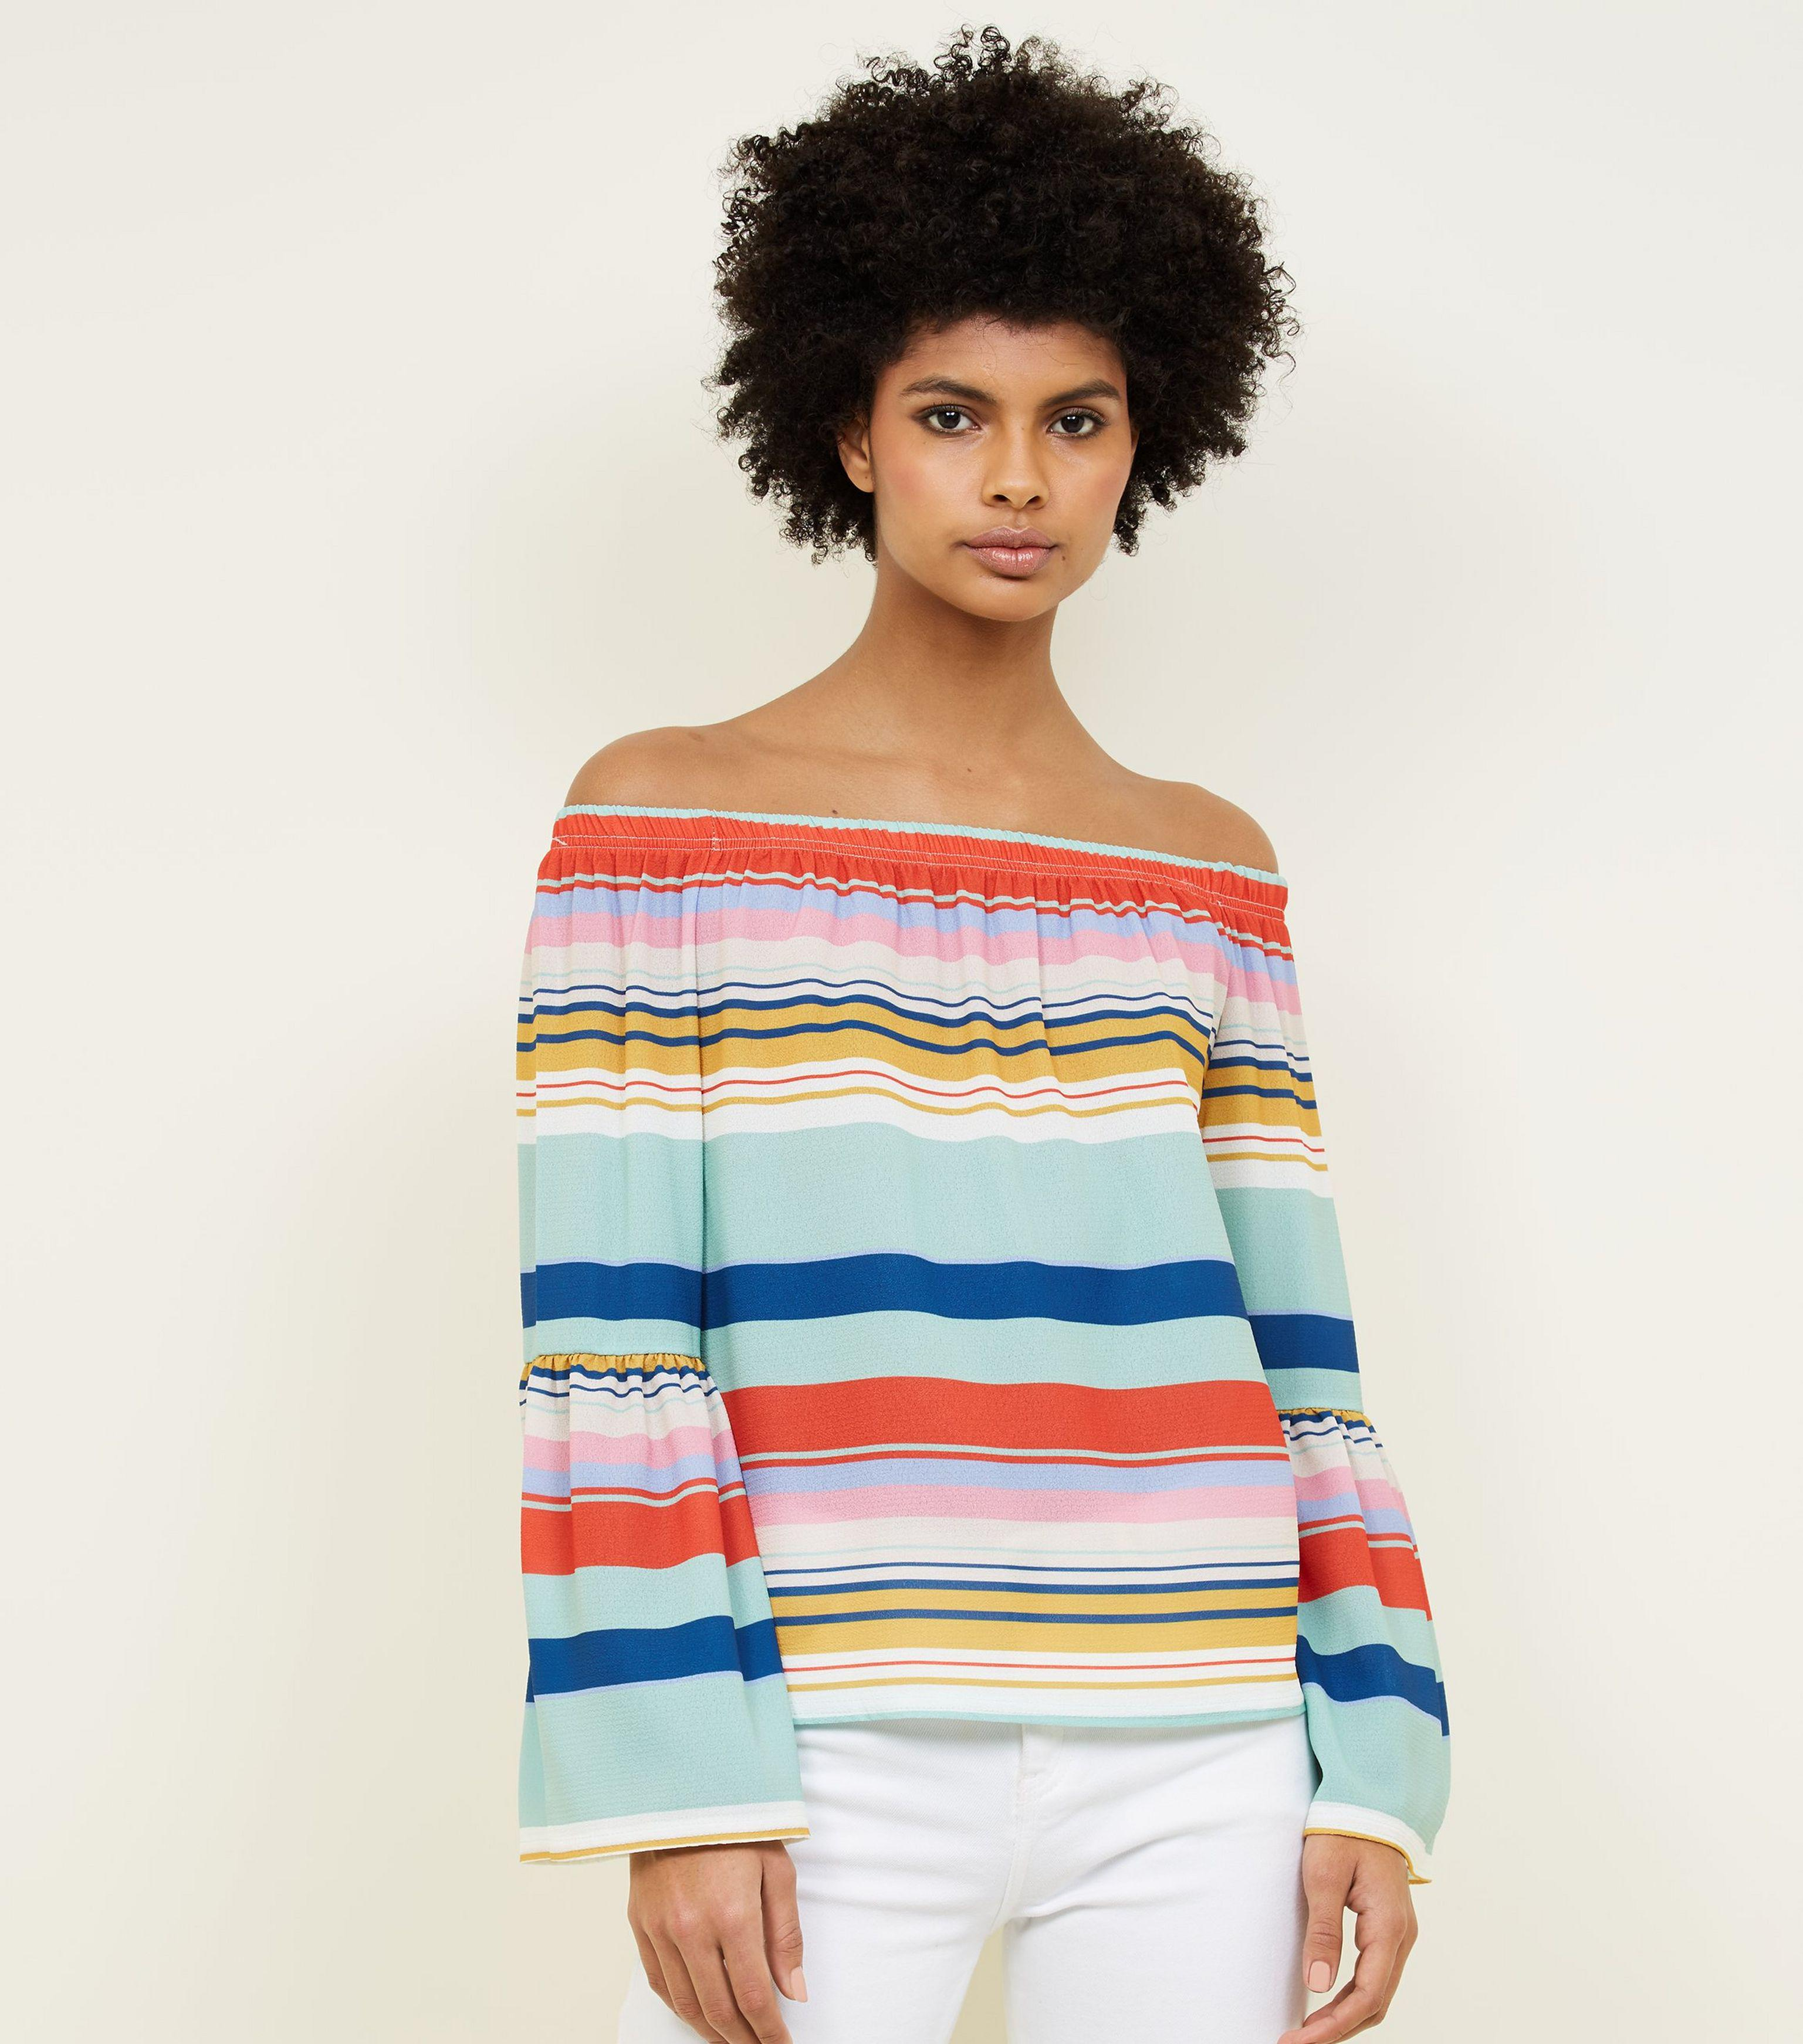 b5bb2f6cc65 ... Rainbow Stripe Bell Sleeve Bardot Top - Lyst. View fullscreen